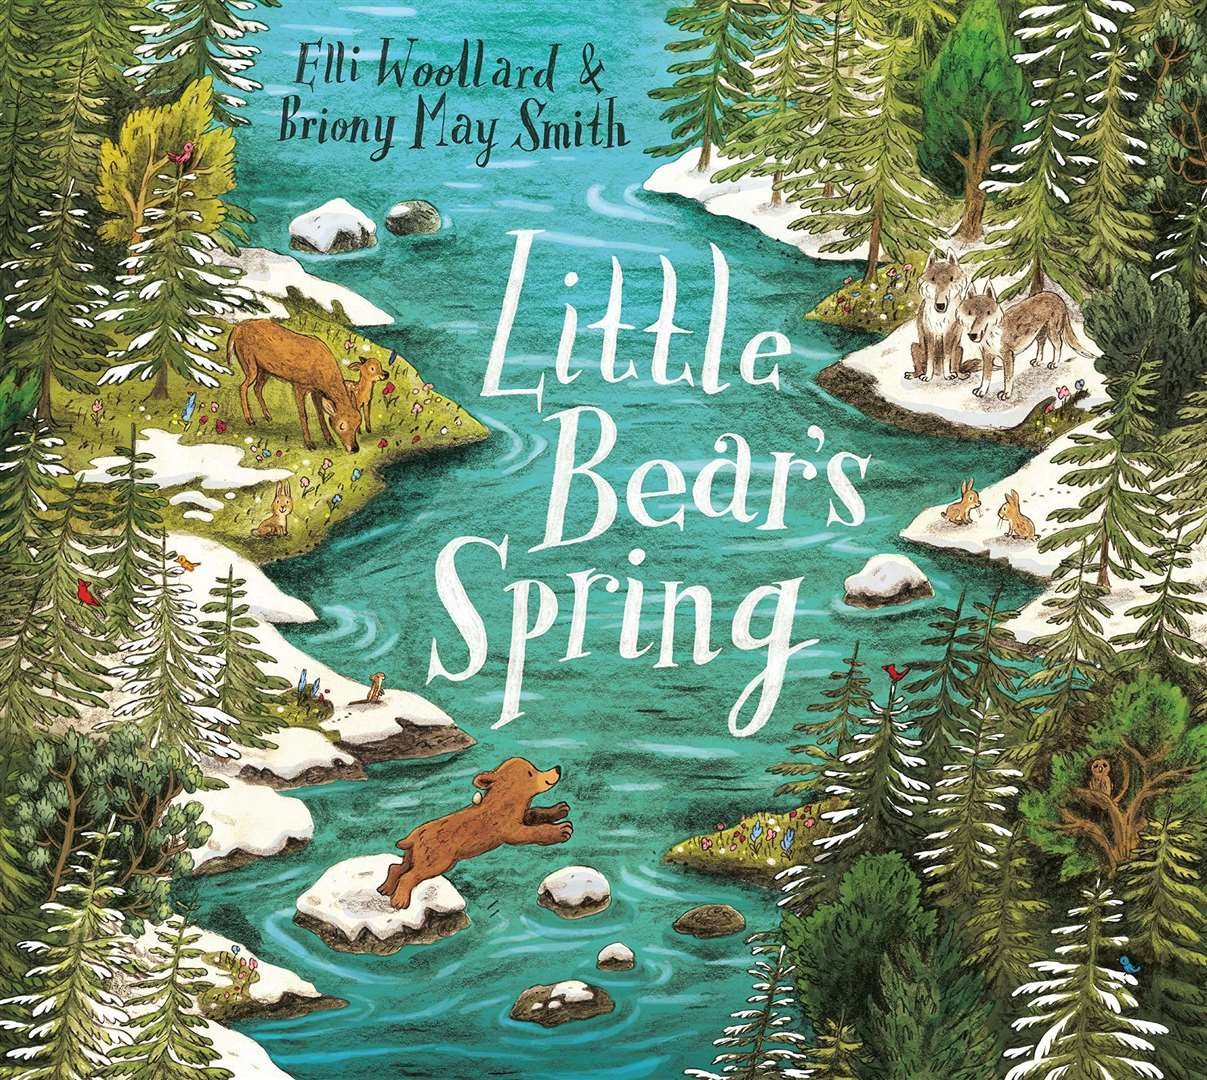 Little Bear's Spring by Elli Woollard and Briony May Smith (44854181)